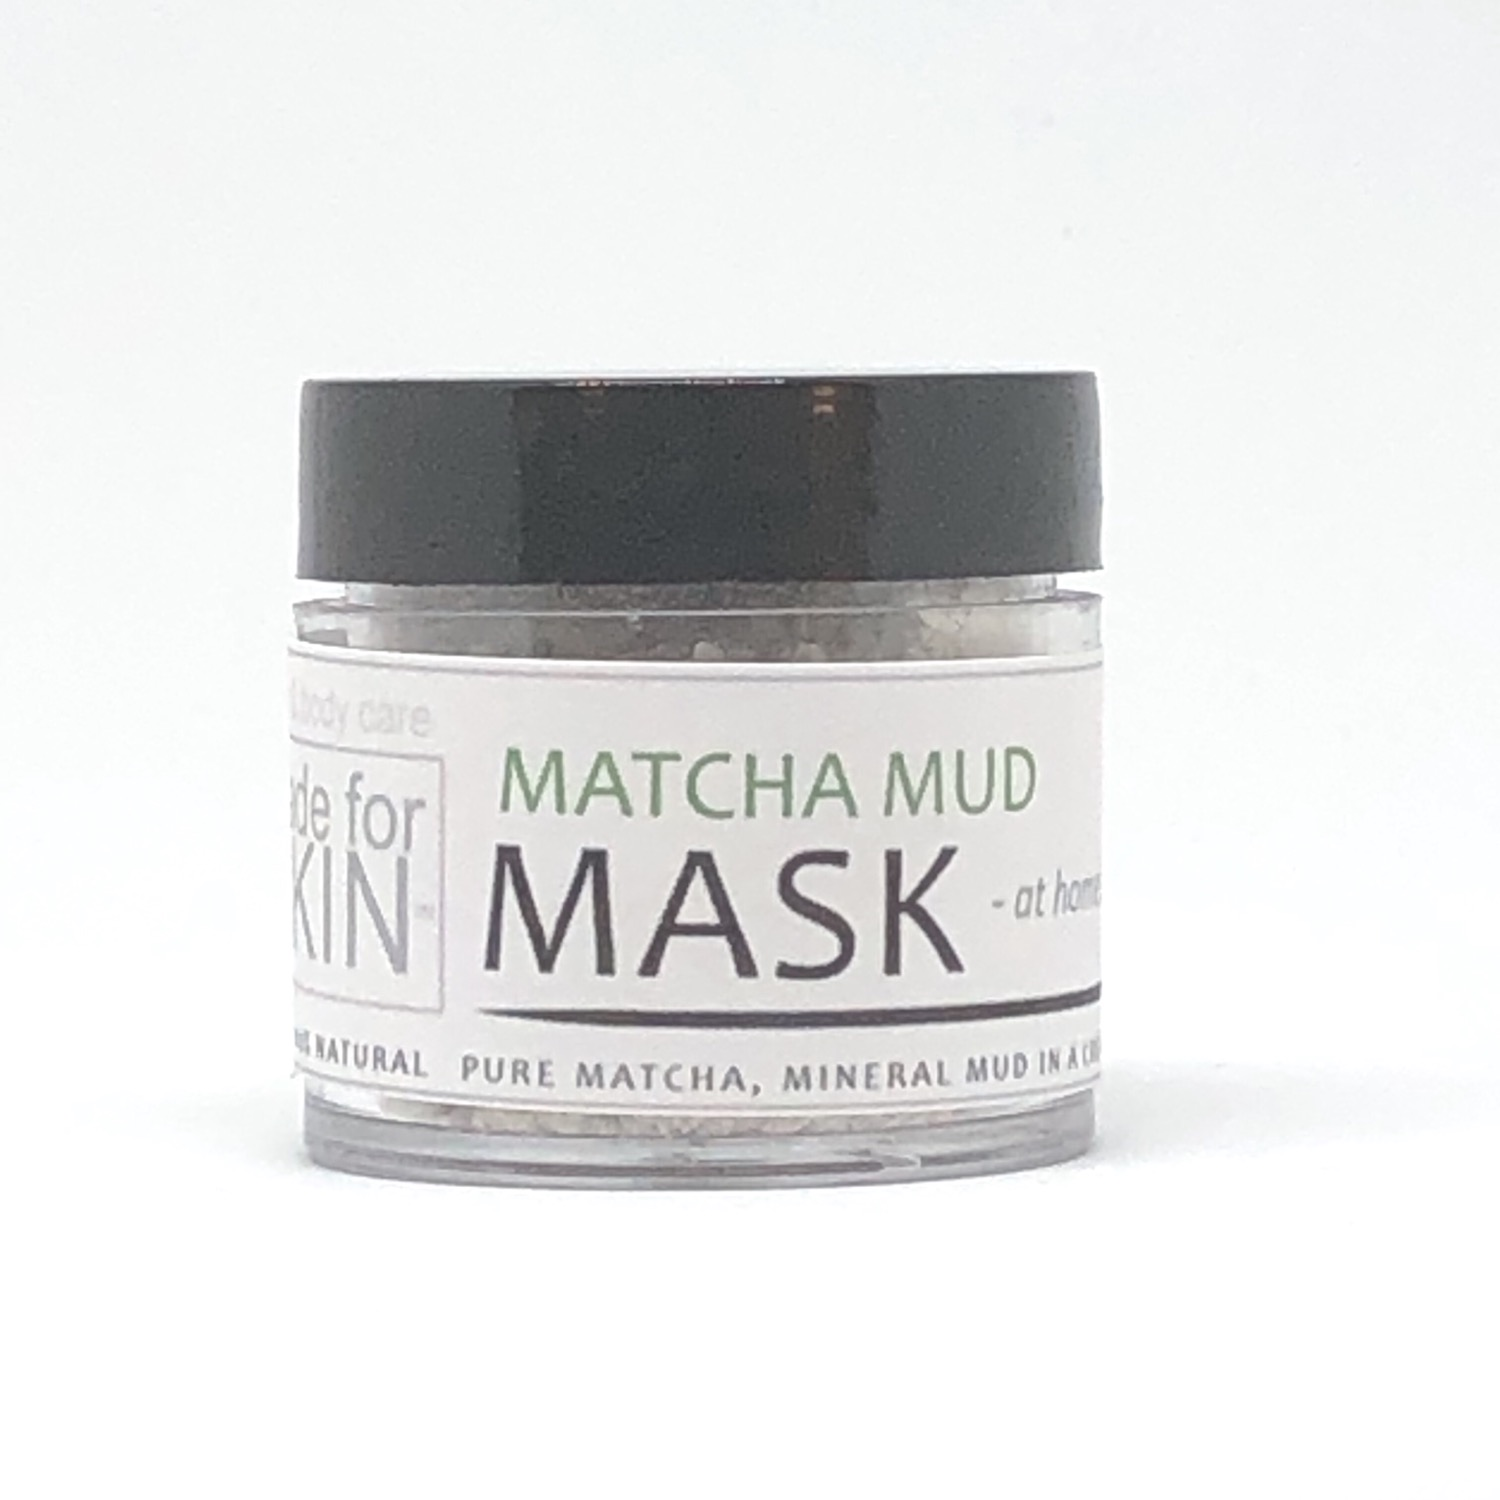 Green Matcha Mud Mask | made for SKIN